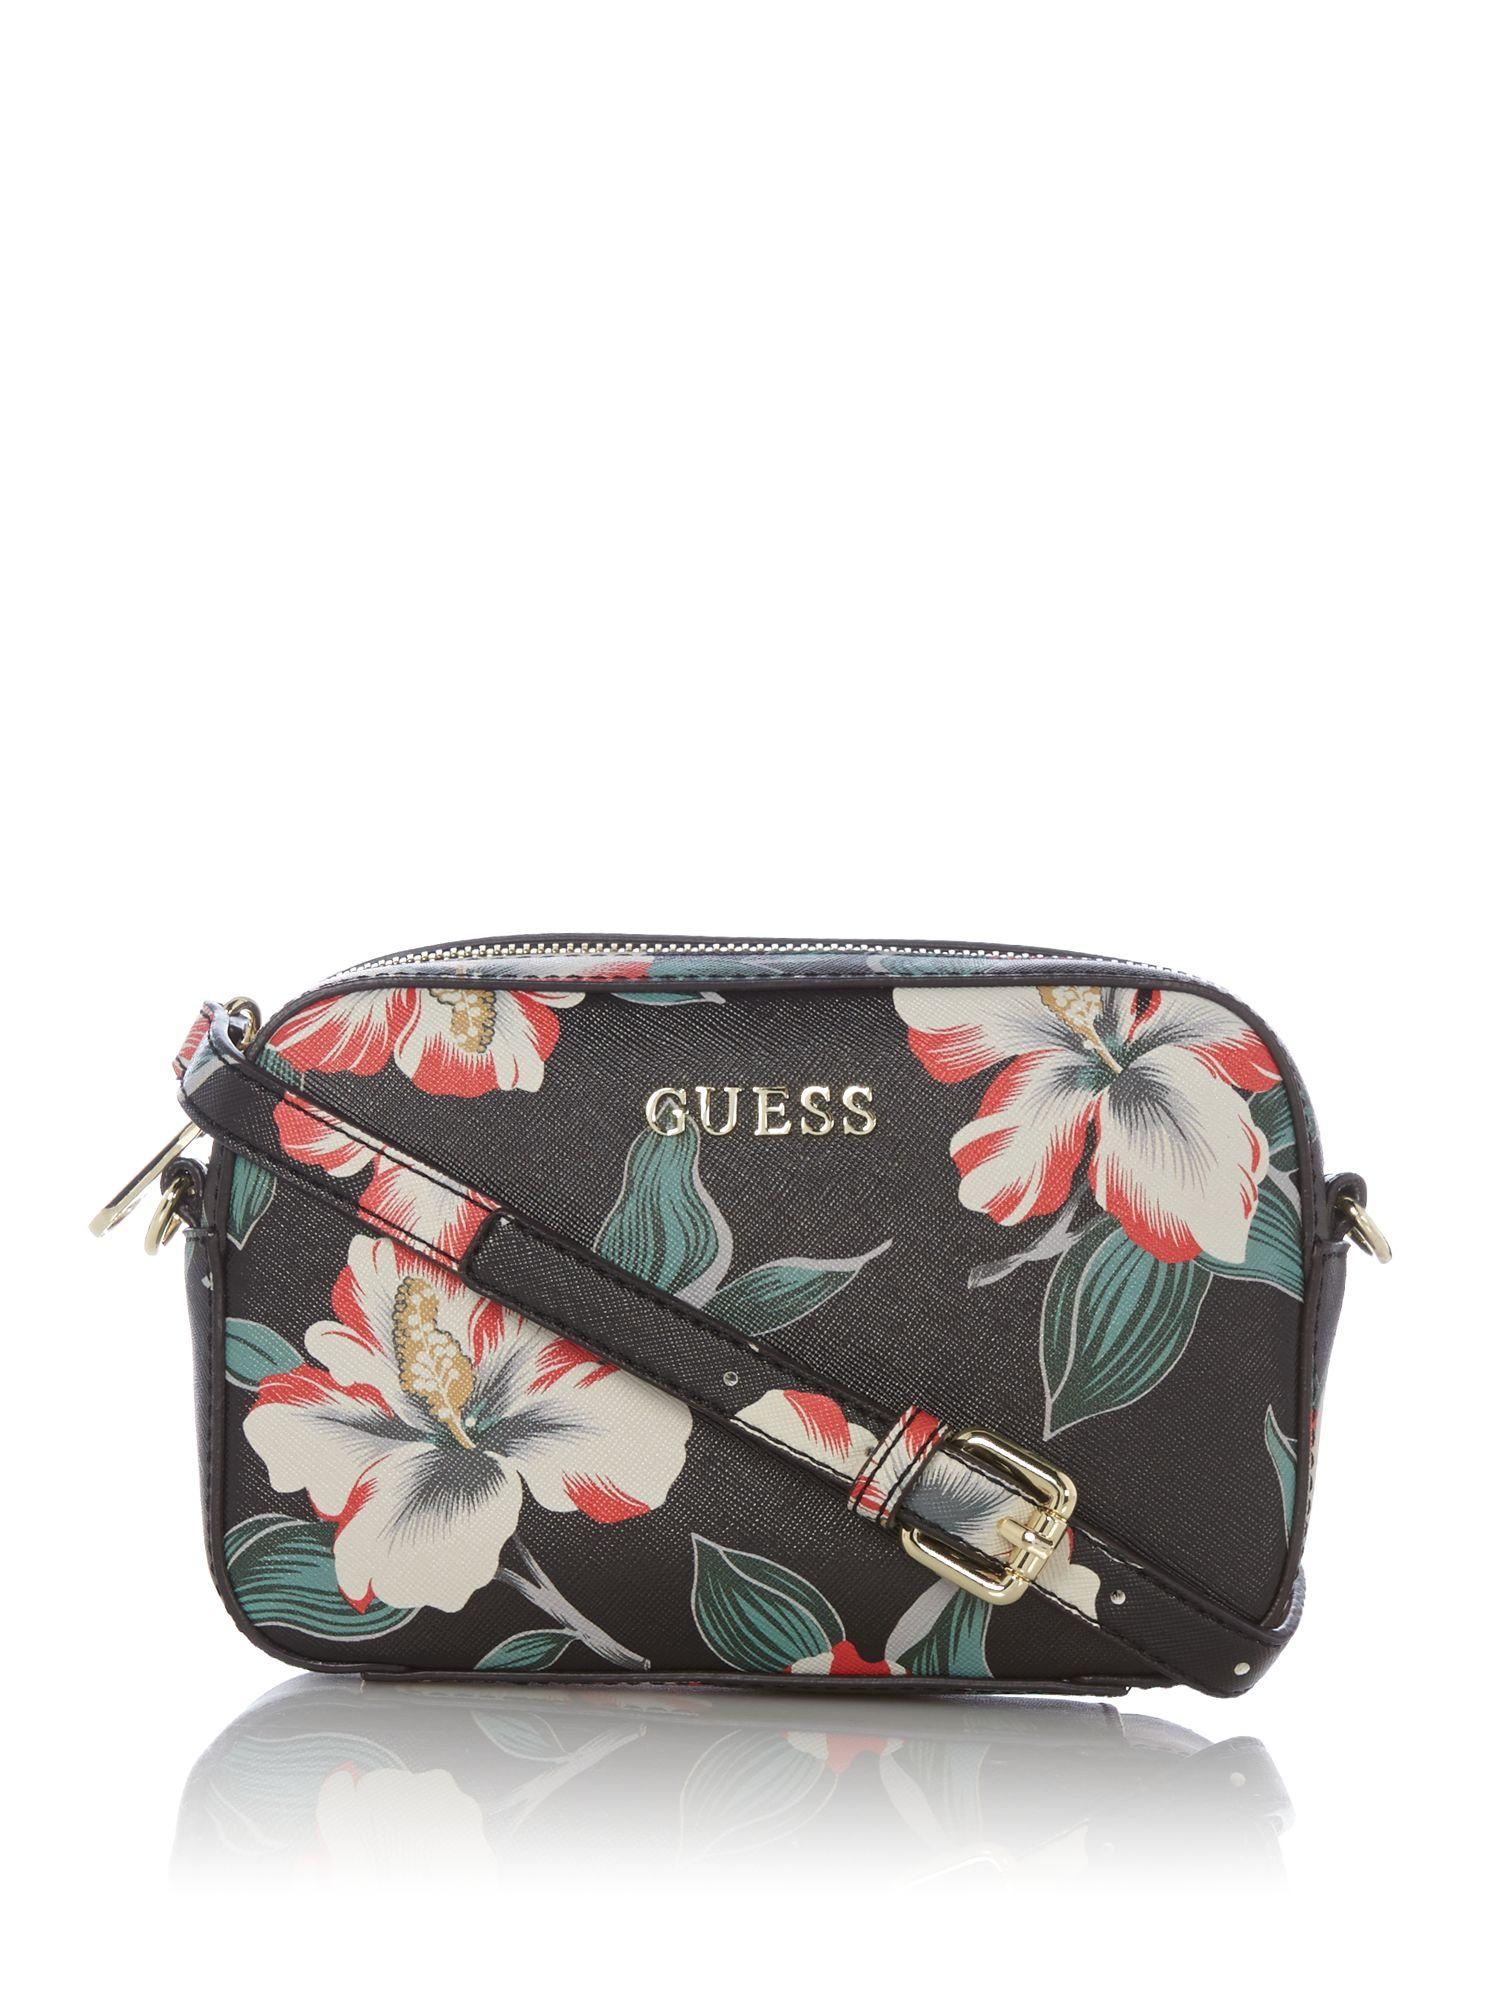 Lyst - Guess Isabeau Floral Cross Body Bag